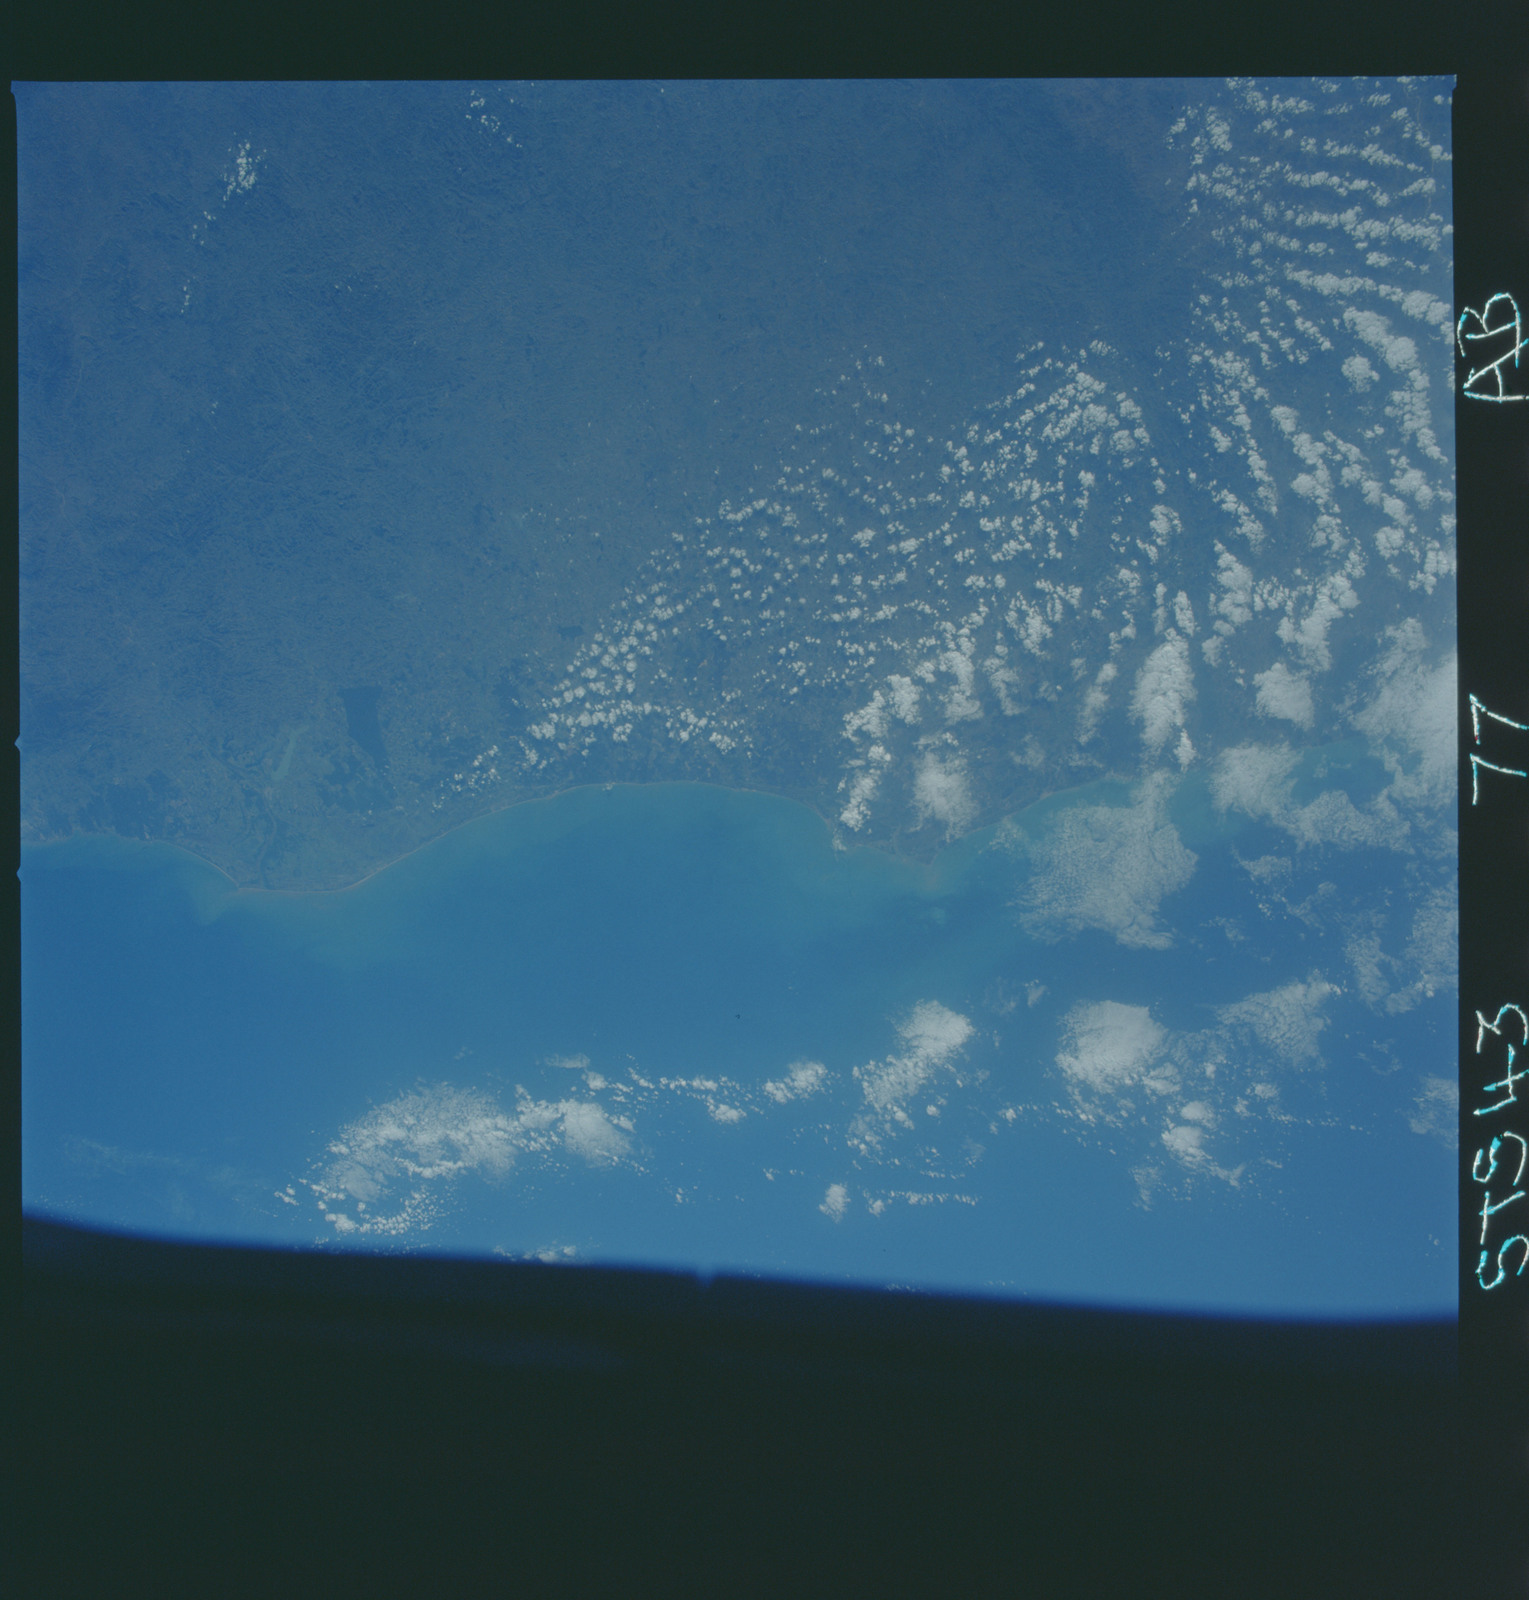 S43-77-000AB - STS-043 - STS-43 earth observations